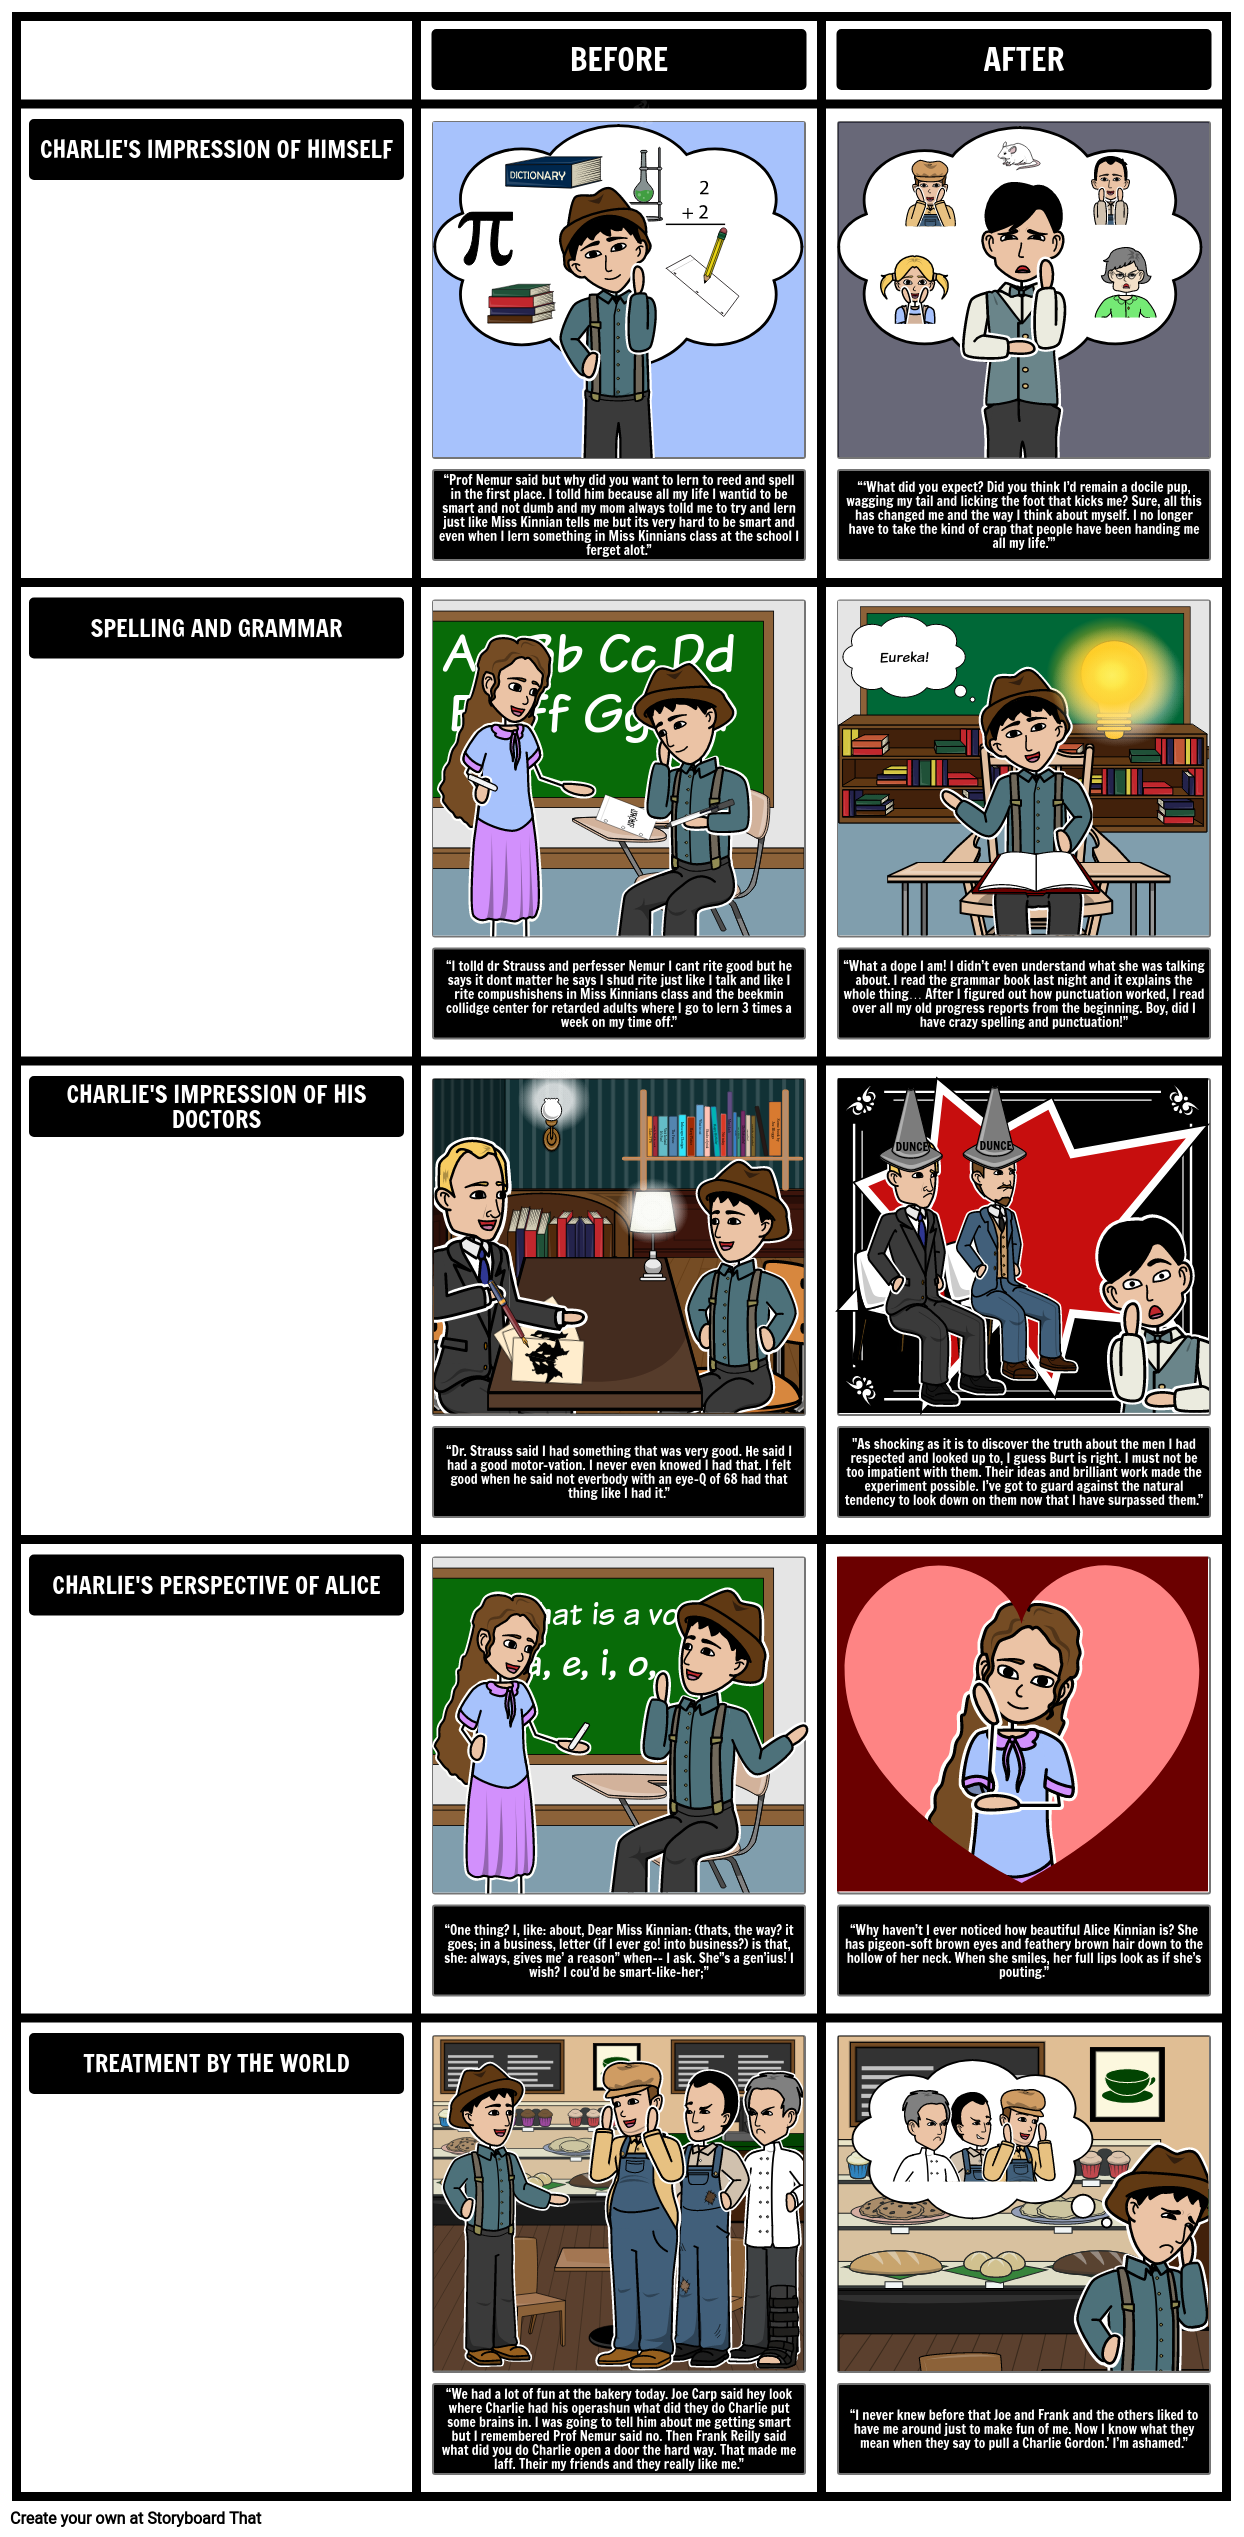 flowers for algernon summary character development more comparing charlie before and after in flowers for algernon